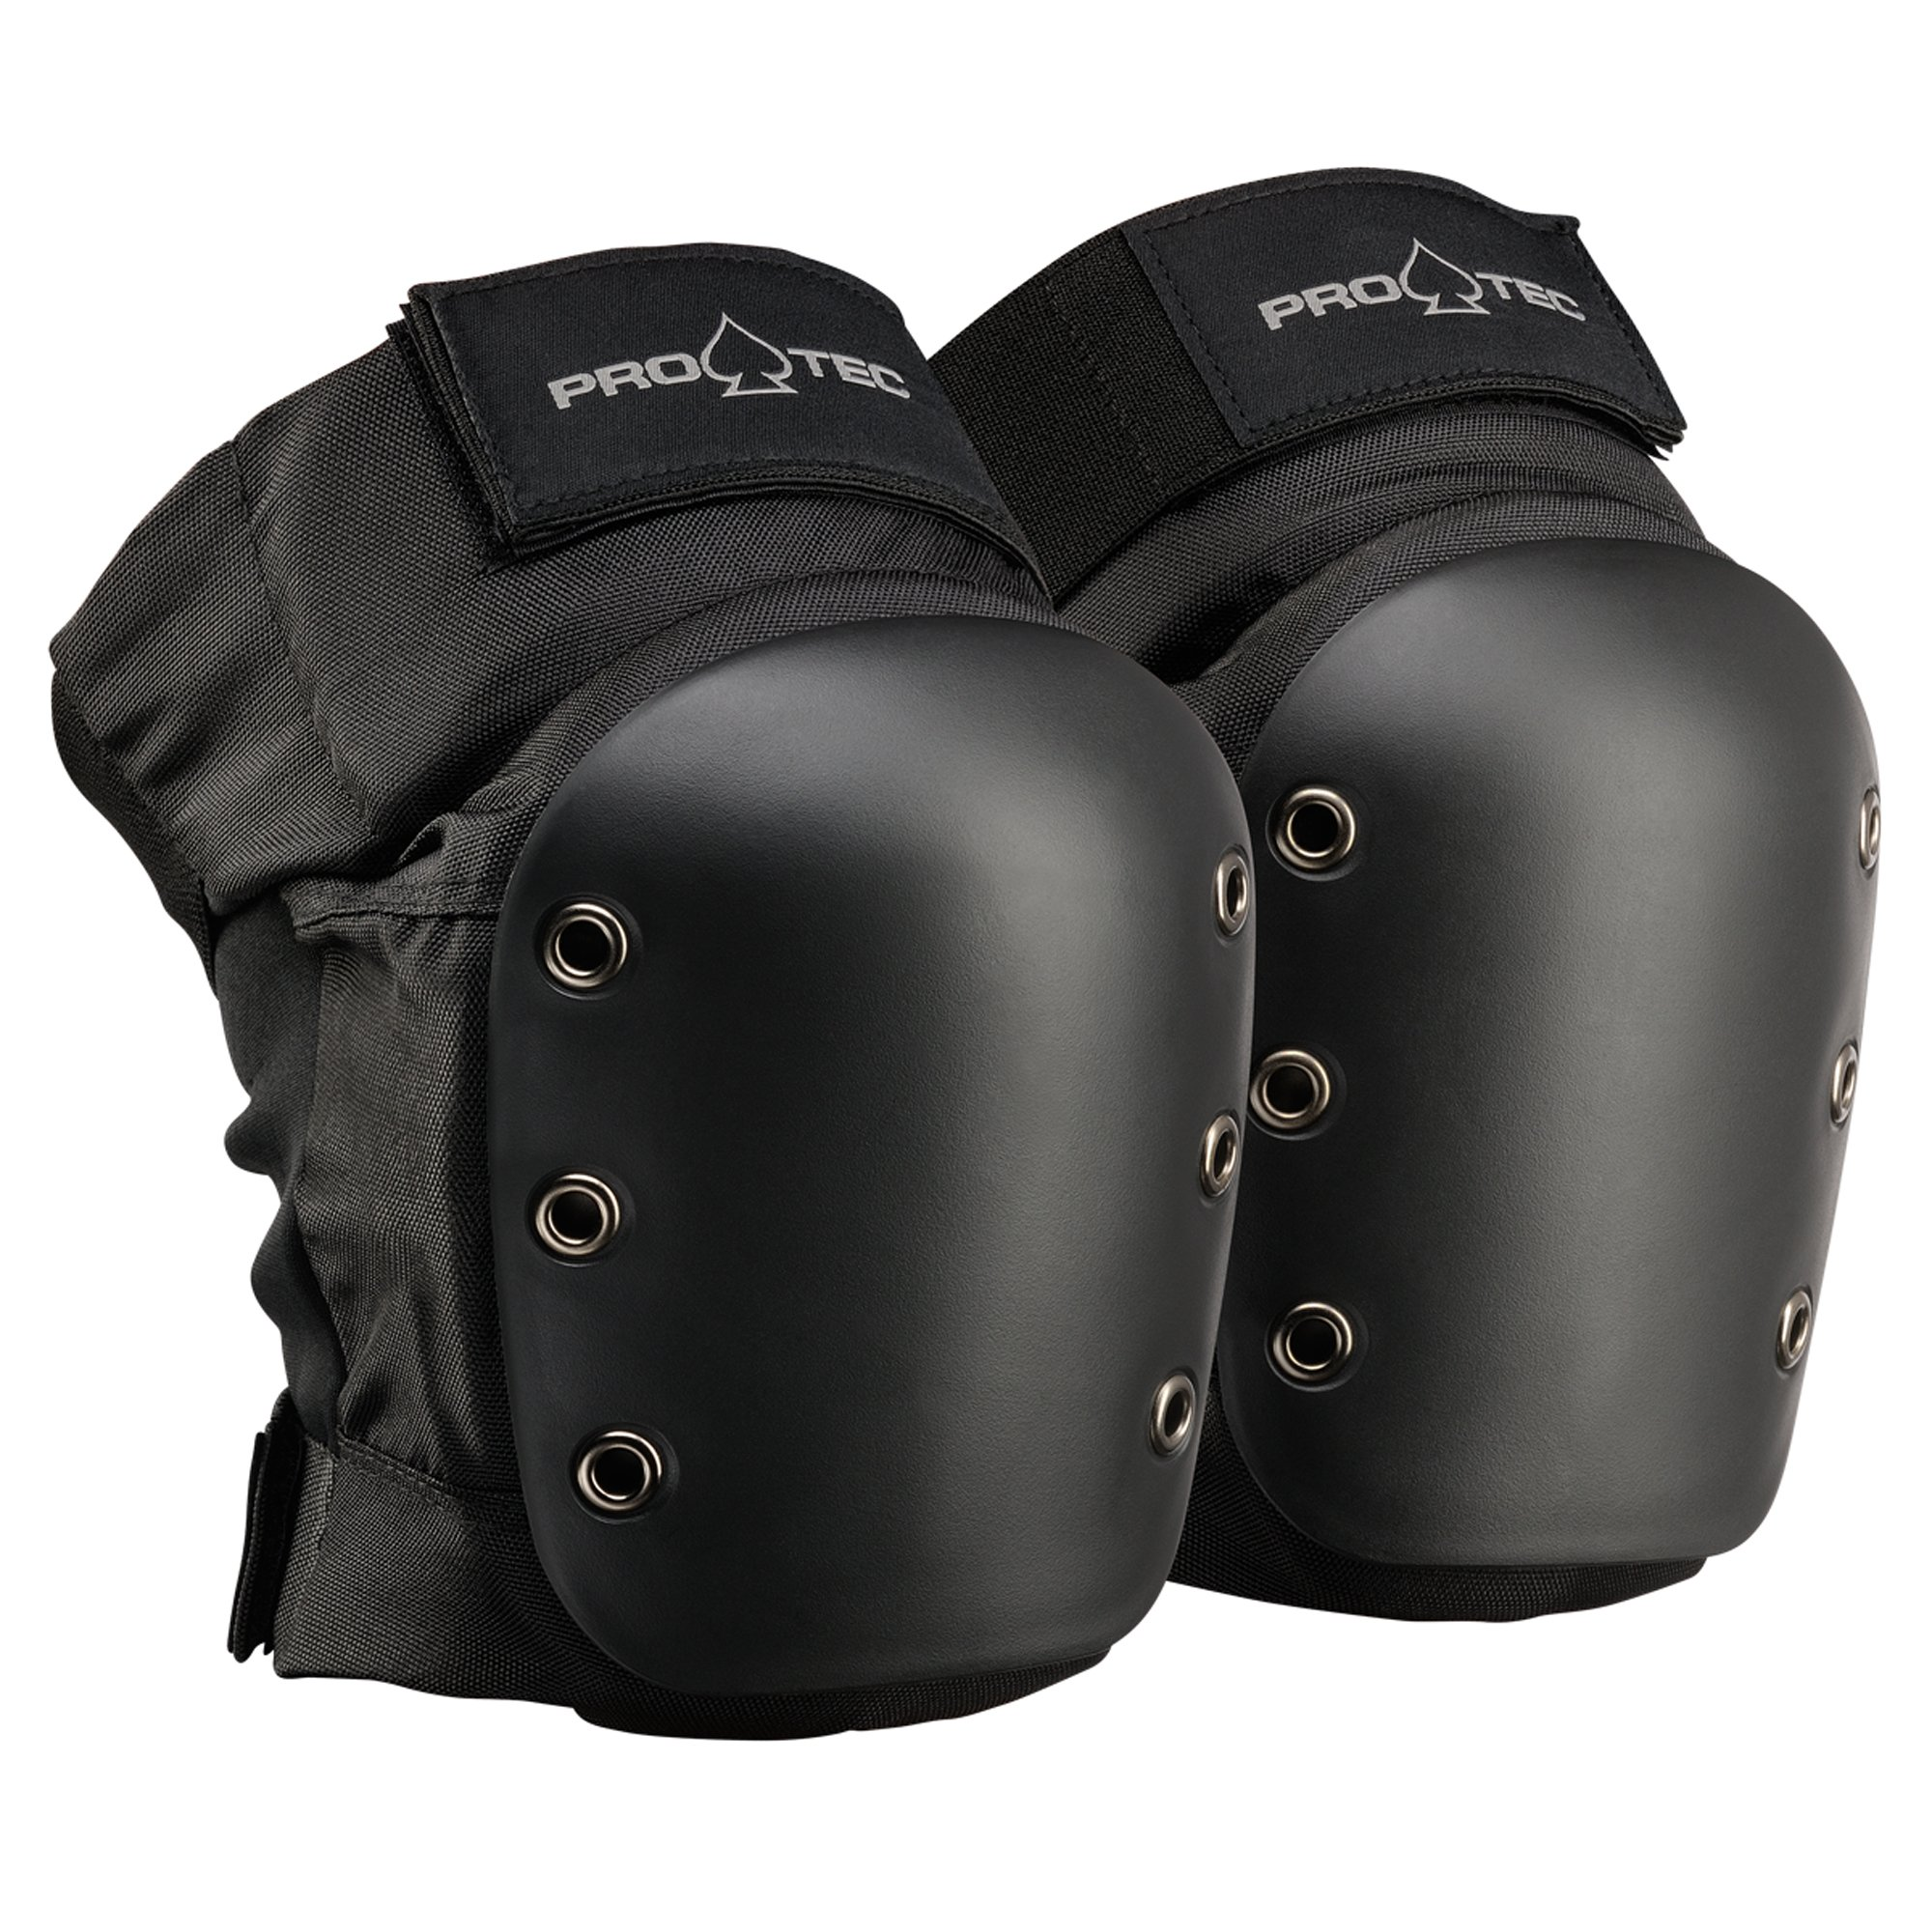 Pro-Tec Street Knee Pads, Medium